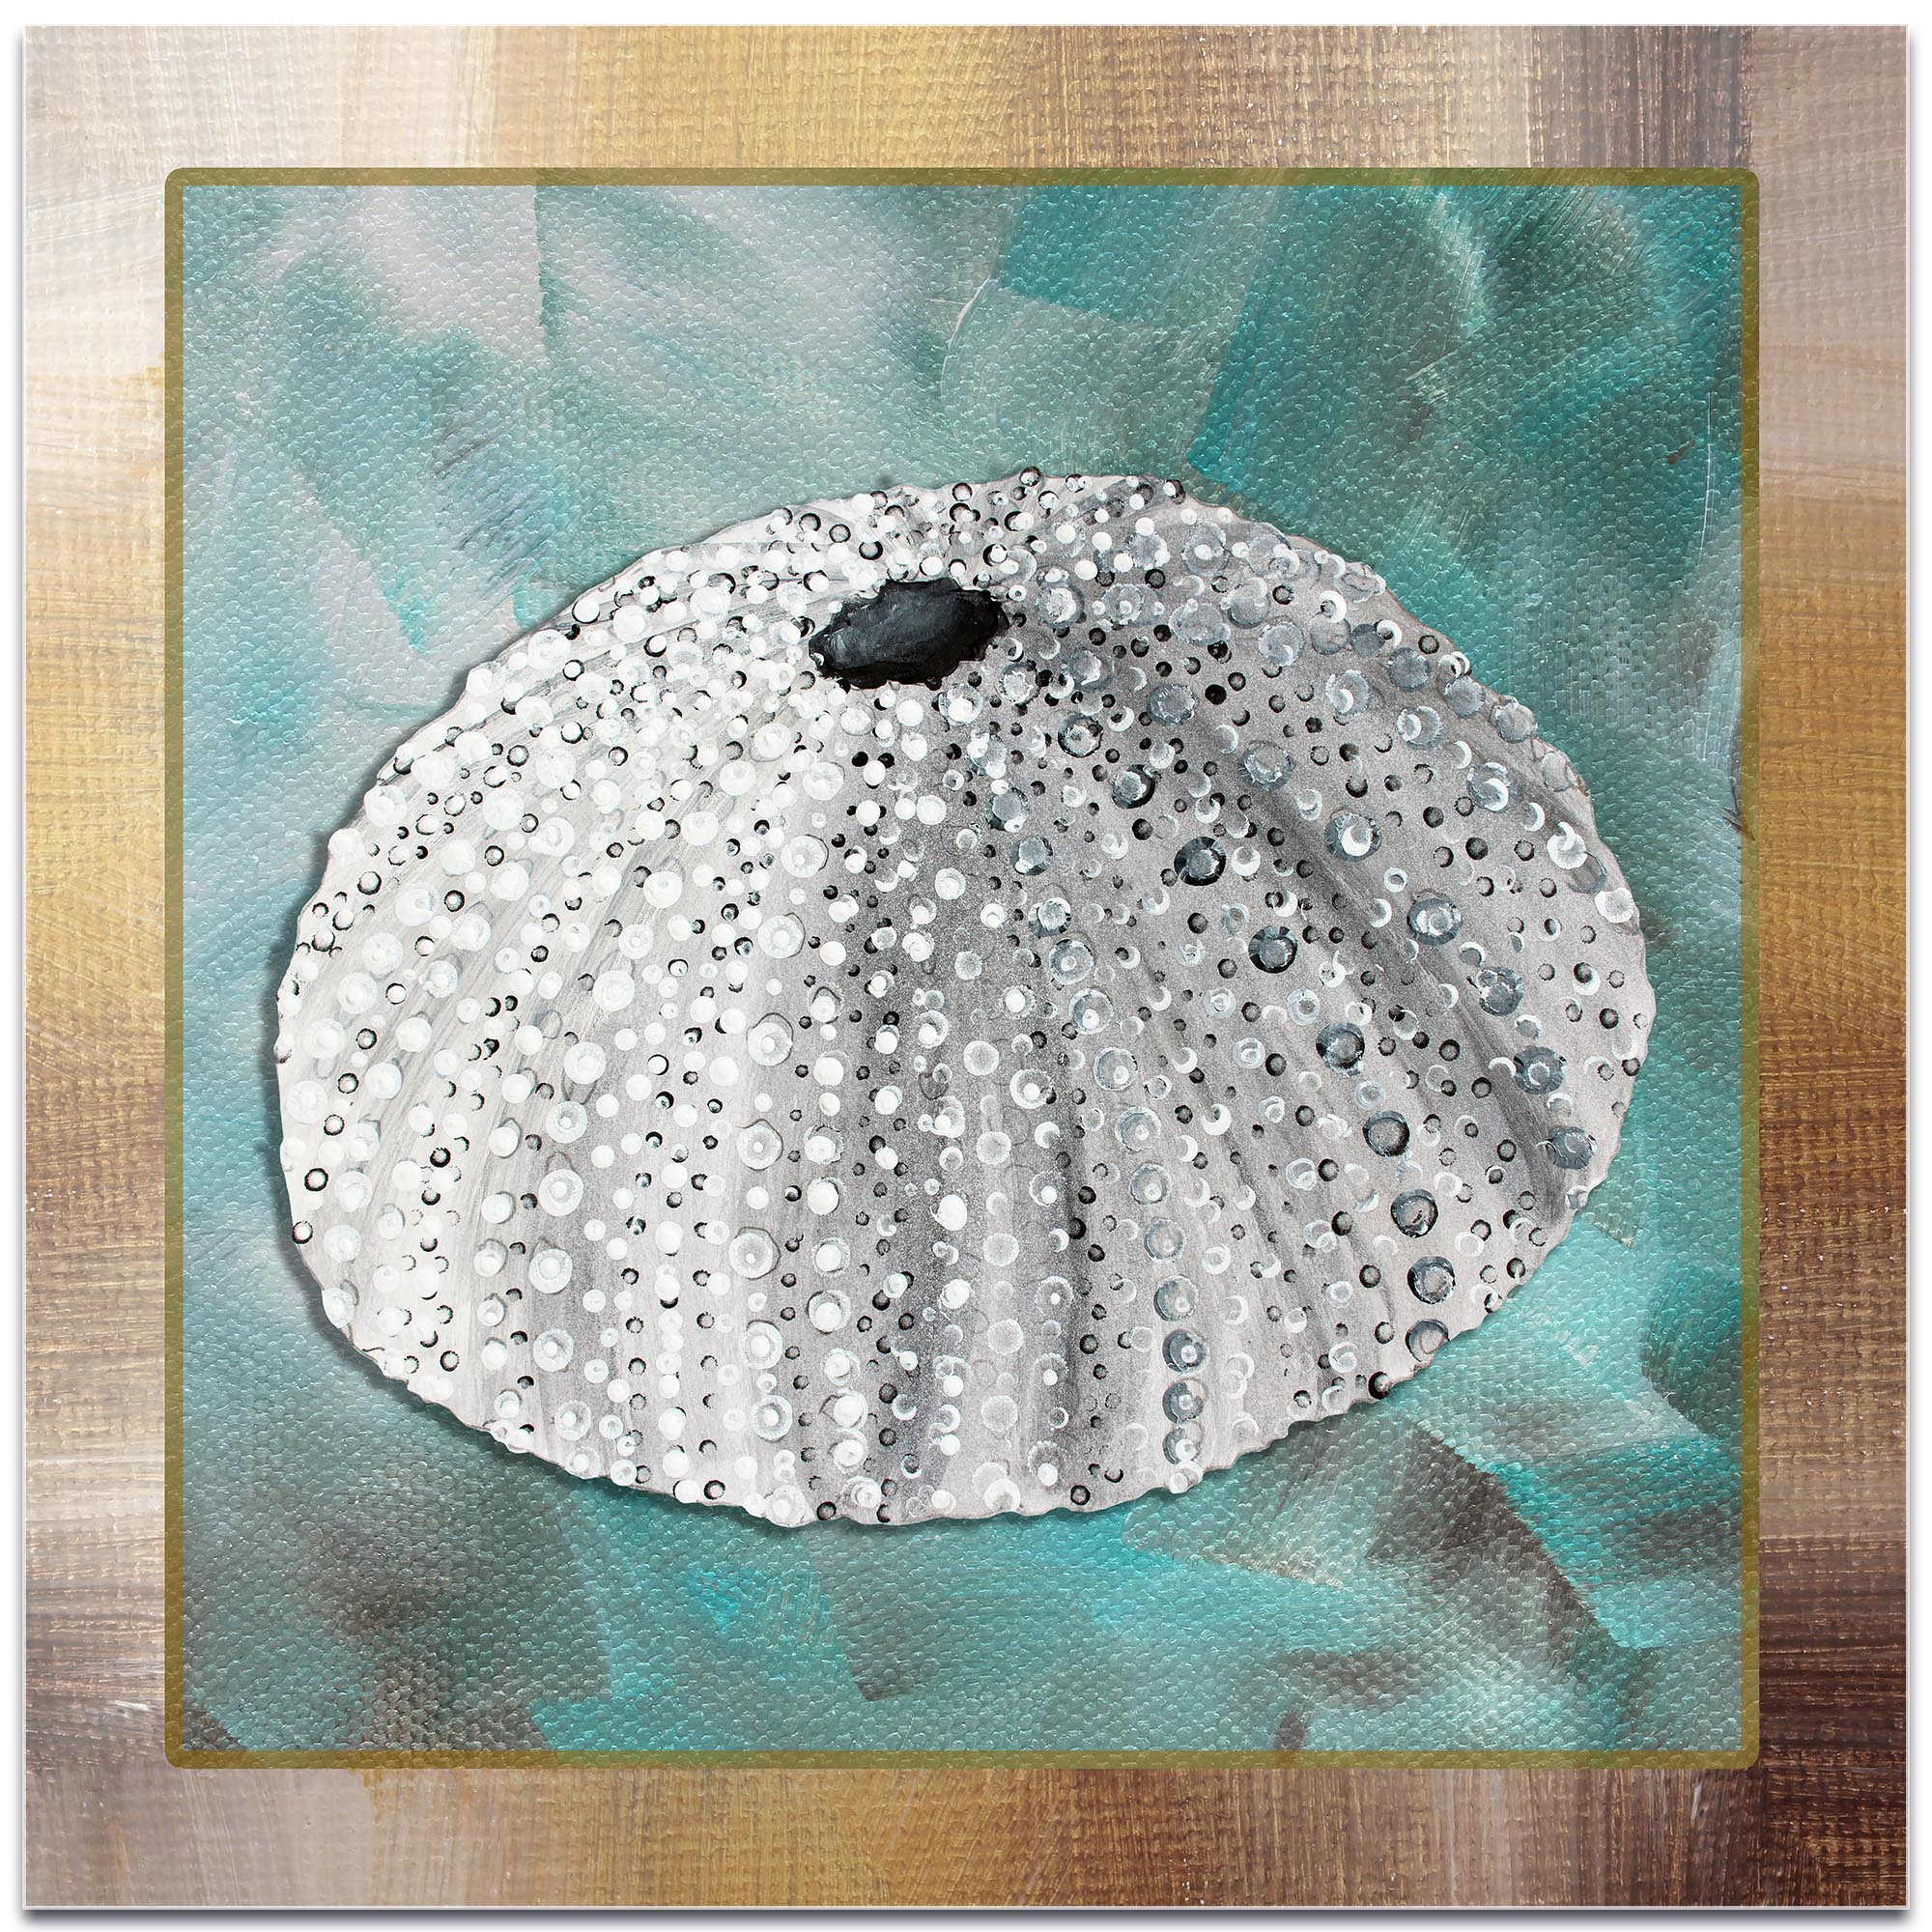 Beach Decor 'Silver Lining Sea Urchin' - Coastal Bathroom Art on Metal or Acrylic - Image 2